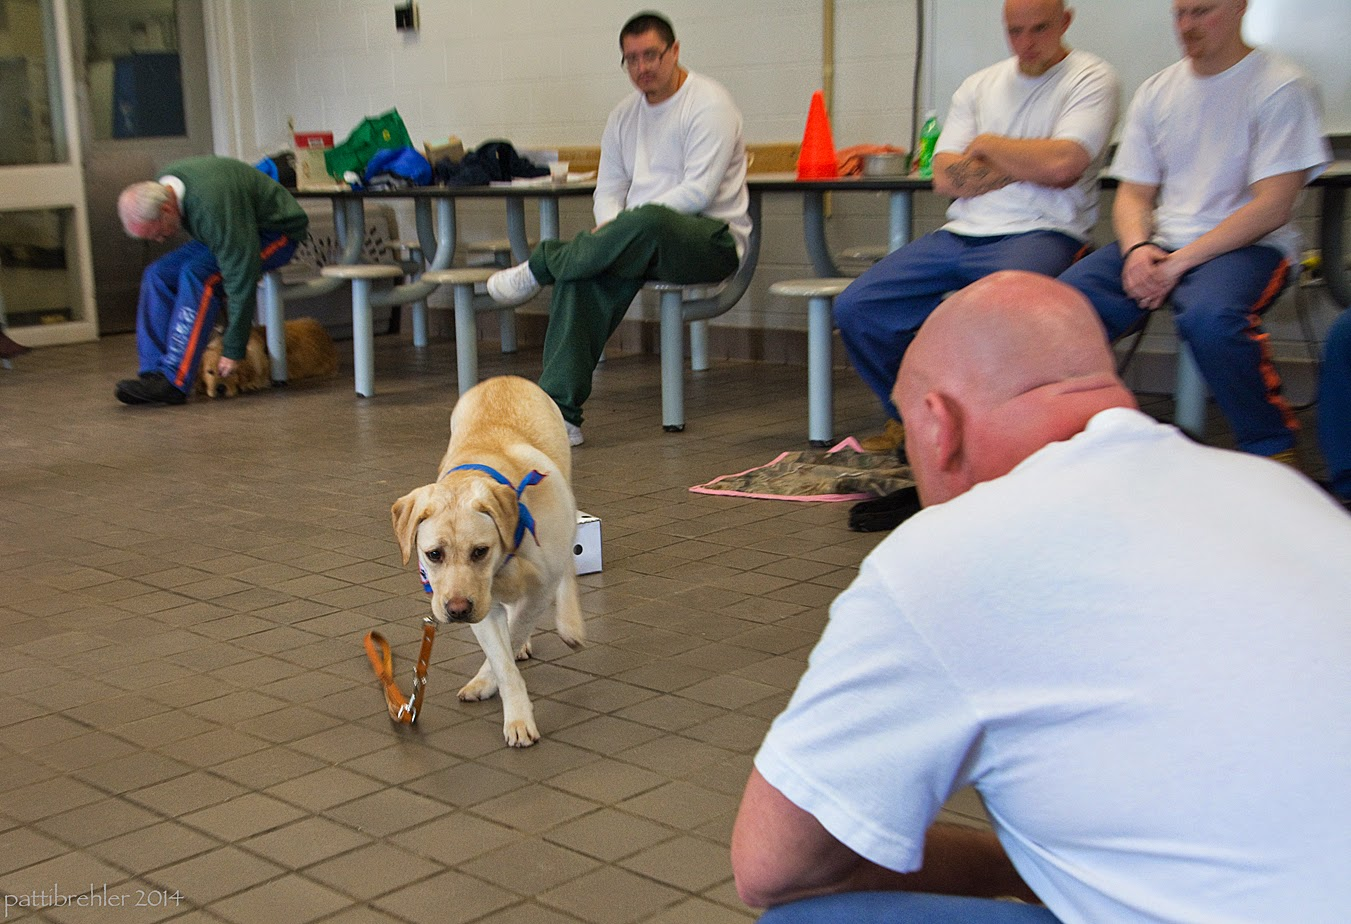 The bald man in the white t-shirt is squatting down facing away from the camera on the right side. The yellow lab is coming toward him, dragging her leash, her right front paw is crossing in front of her left paw. The man in the green sweatshirt sitting in the background is bending over to pet the golden retriever that is lying onf the floor beneath him. There are three more men in the background sitting in a row on stools attached to lunch tables. All of their faces are out of the camera's view. They are all wearing white t-shirts, one is wearing green pants, the two on the right side are wearing the blue prison pants.